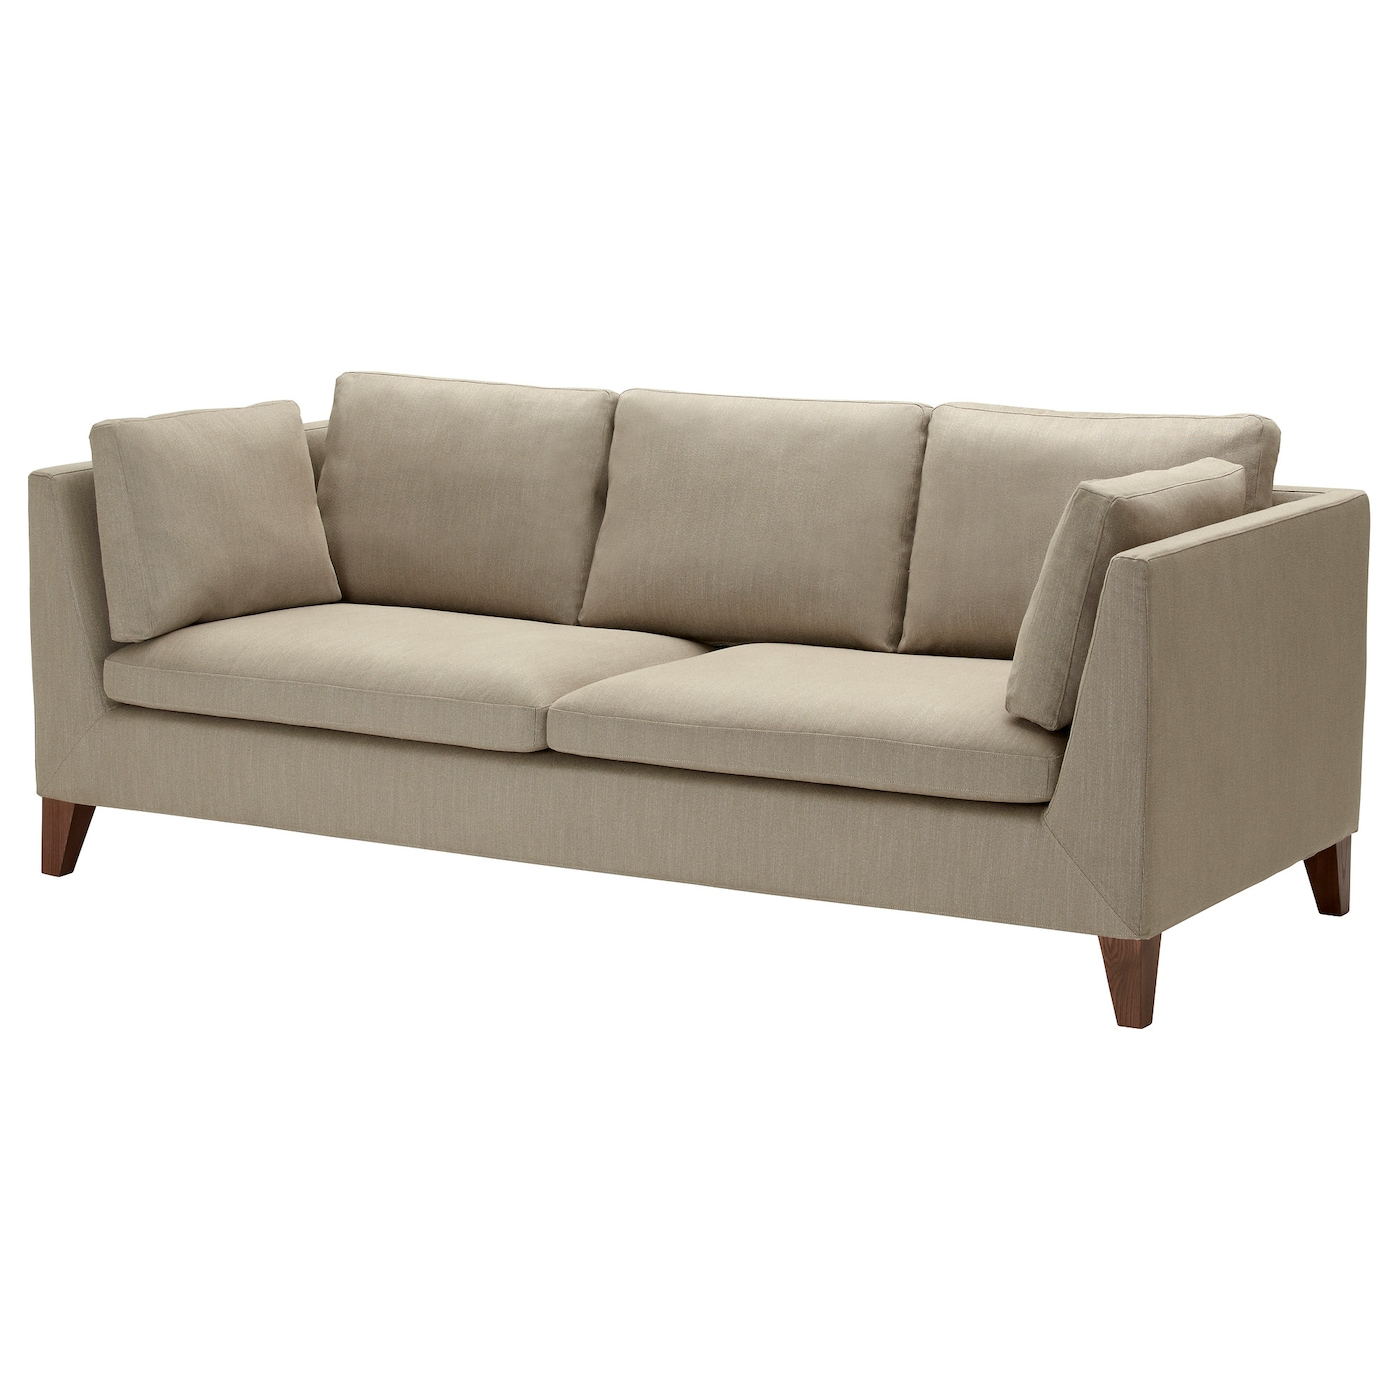 Stockholm Three Seat Sofa Gammelbo Light Brown Ikea: ikea stockholm sofa